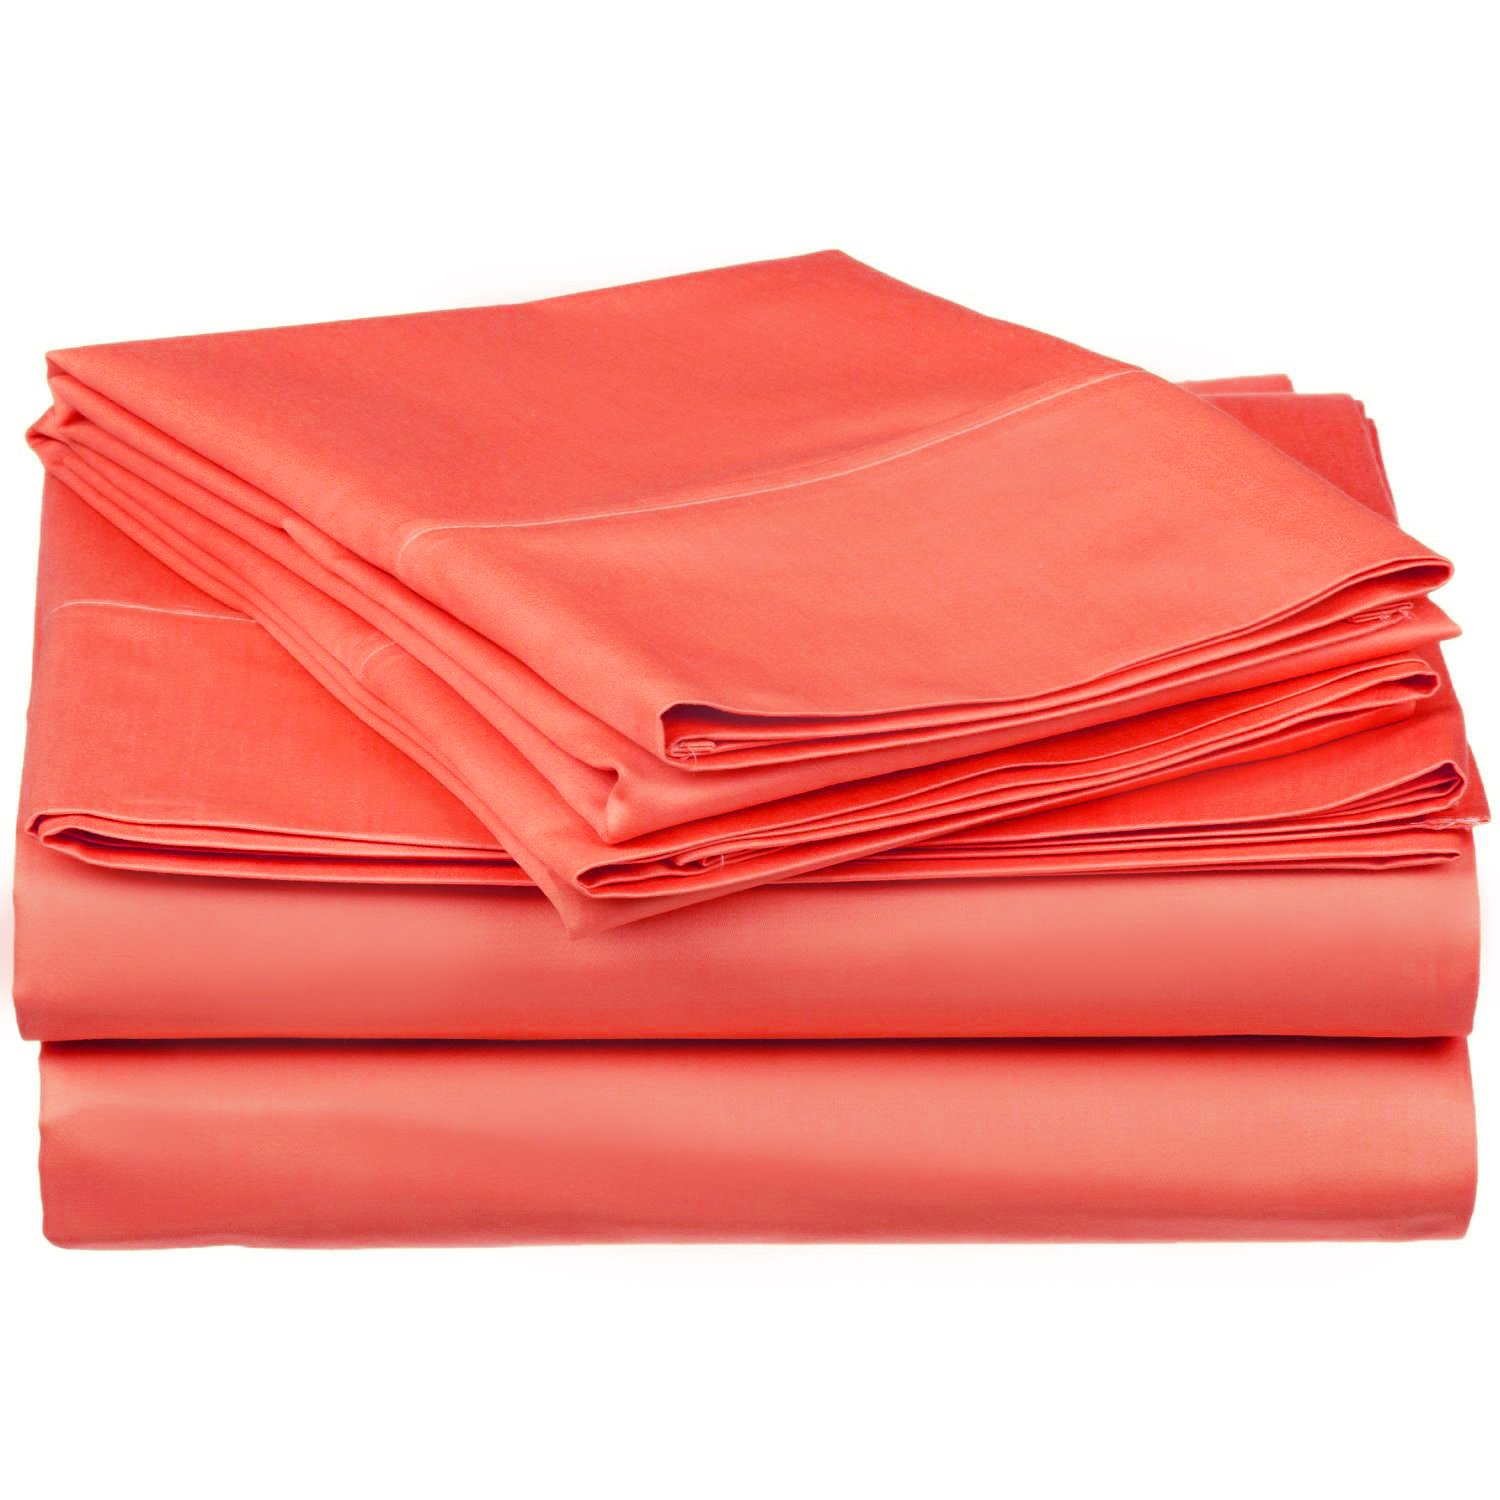 100% Premium Long-Staple Combed Cotton 300 Thread Count Twin XL 3-Piece Sheet Set, Deep Pocket, Single Ply, Solid, Coral Superior 300XLSH SLCO